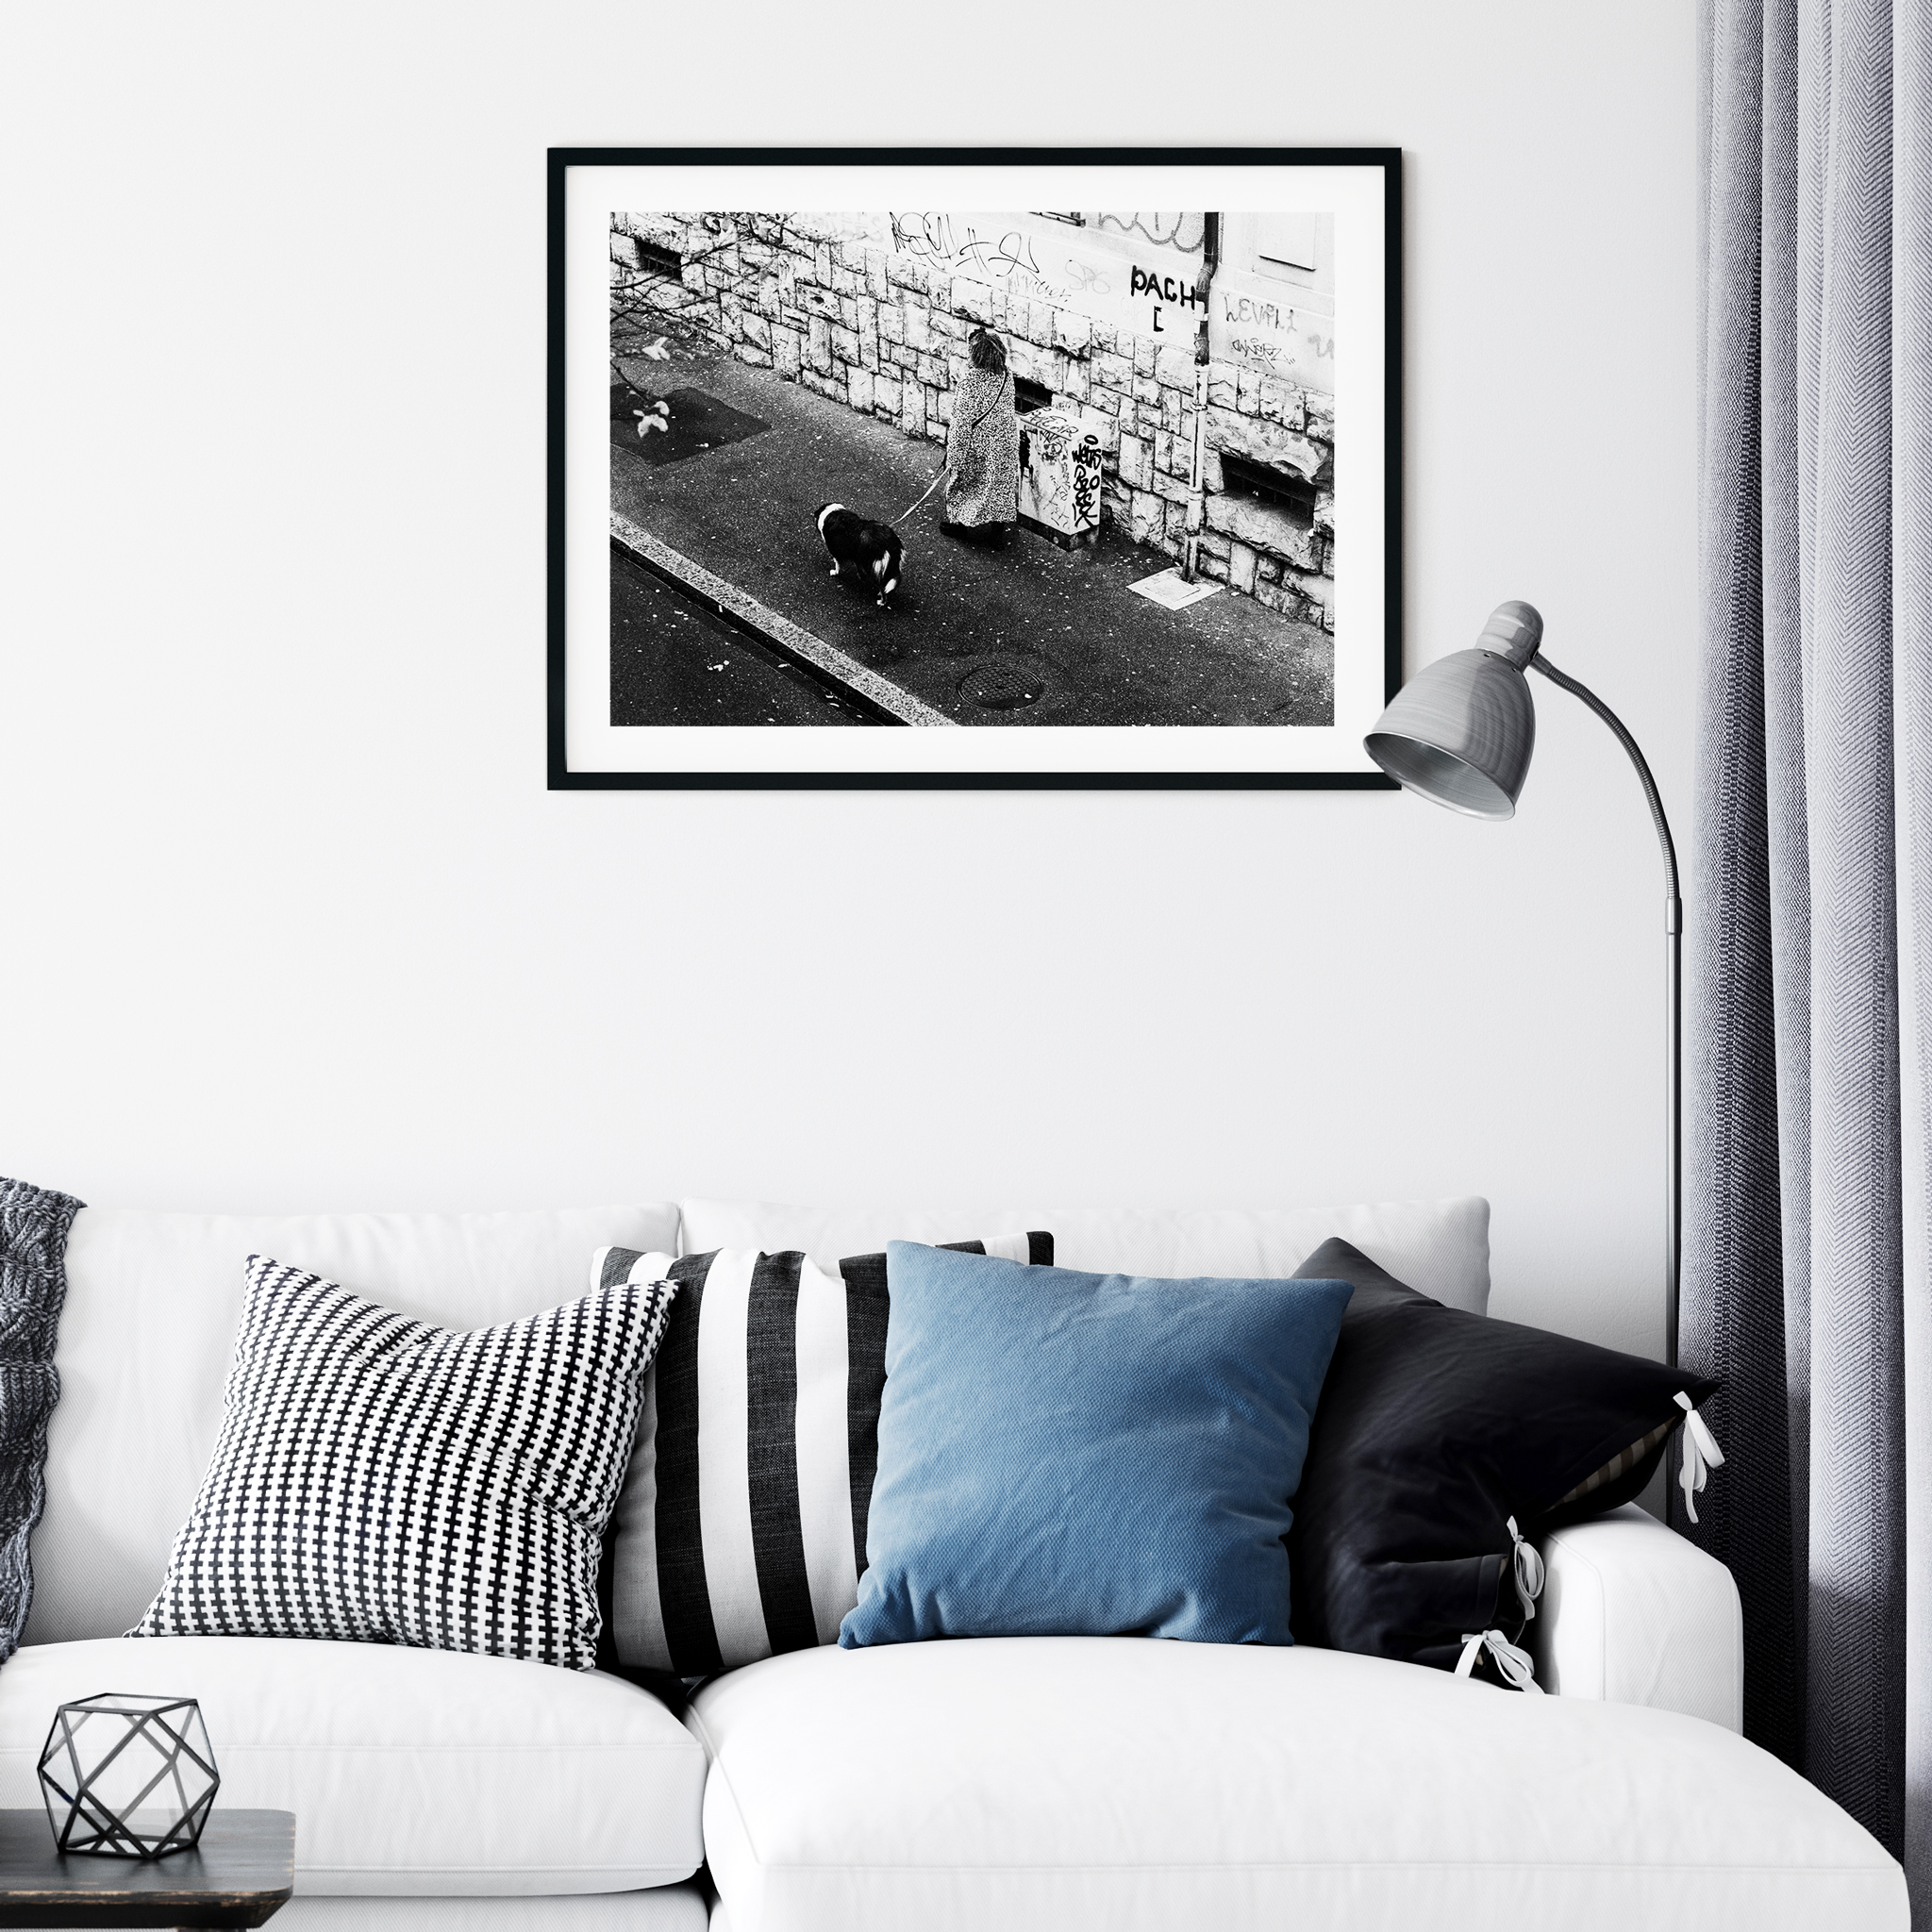 Rue De Simplon, Lausanne - black and white print with the border in a black frame on the wall